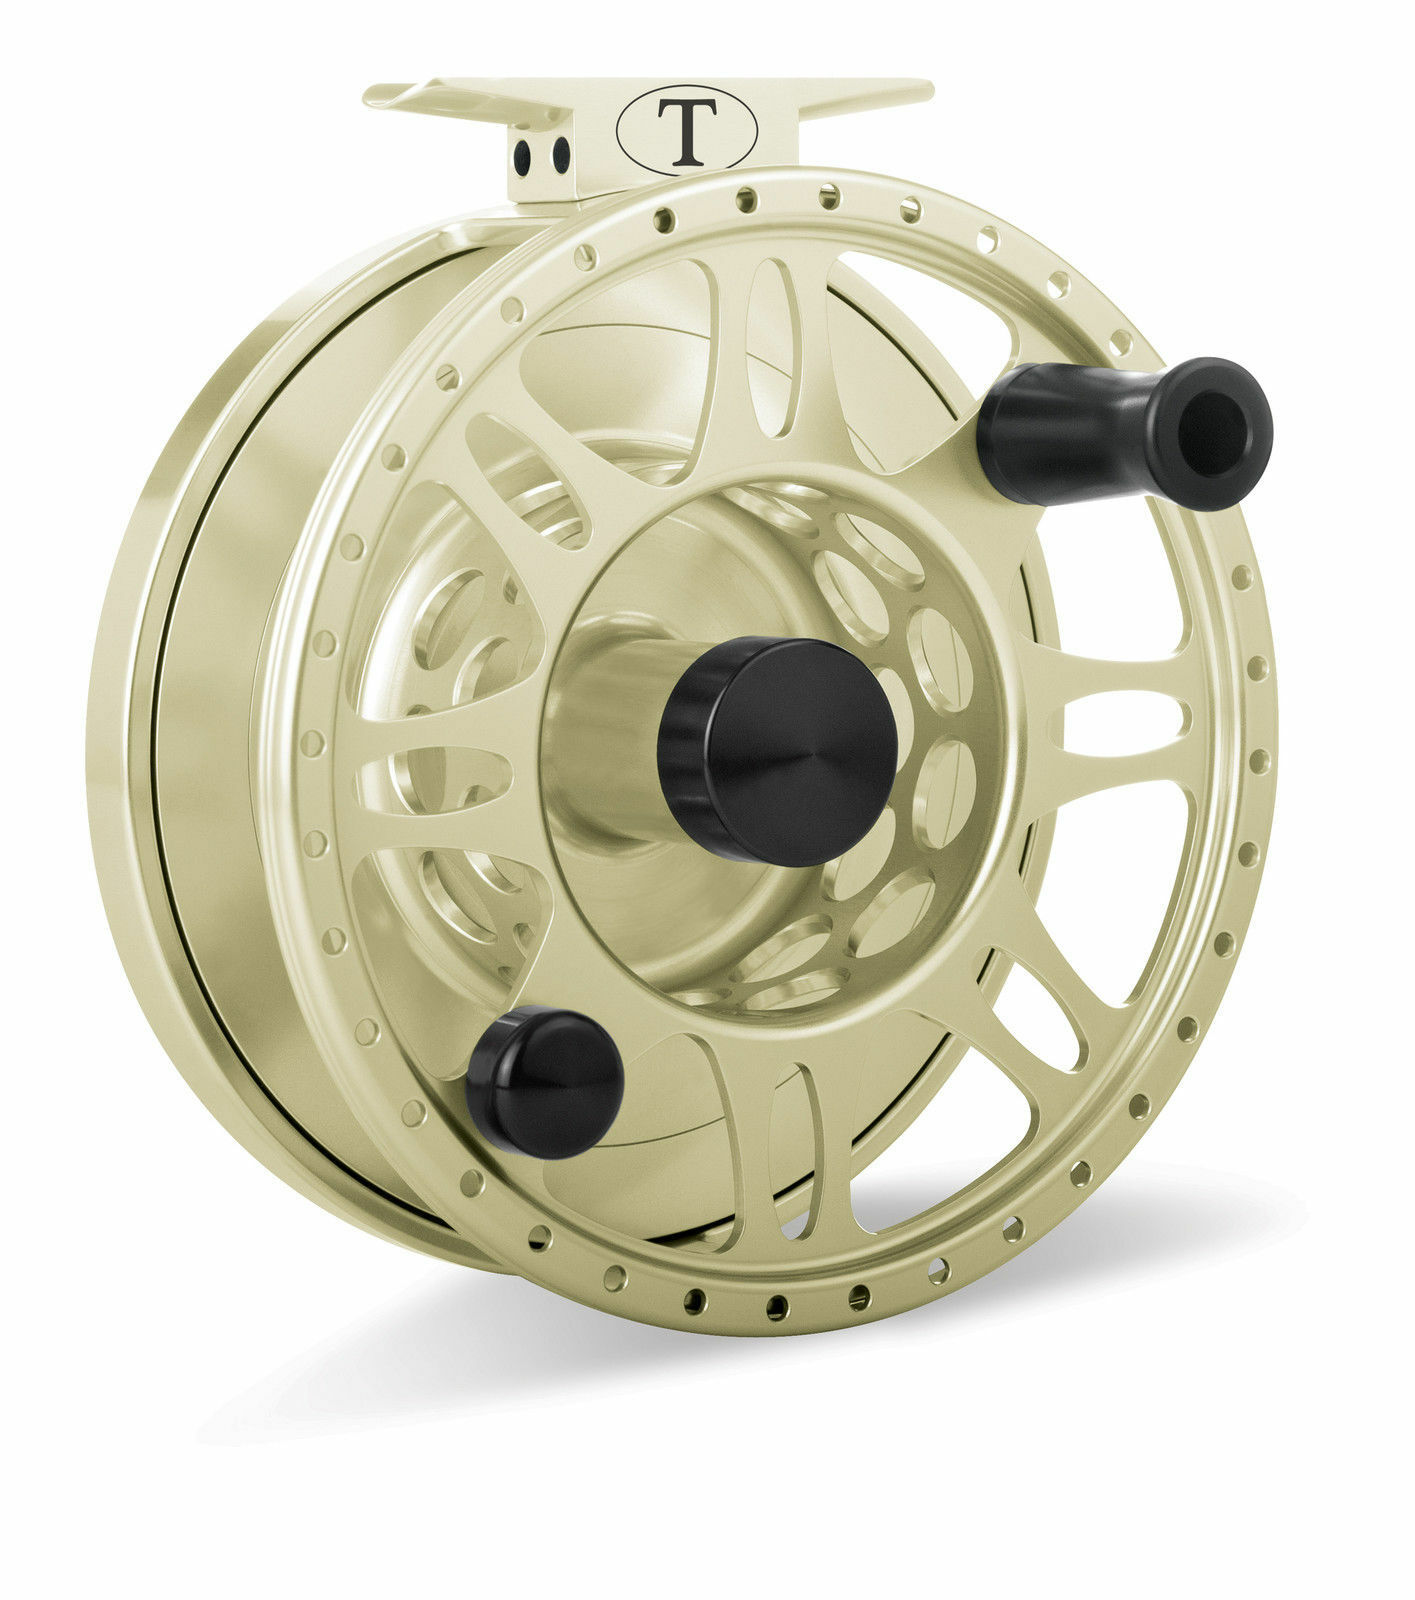 NEW TIBOR EVERGLADES oro  789 FLY FISHING REEL FREE  100 LINE, SHIPPING